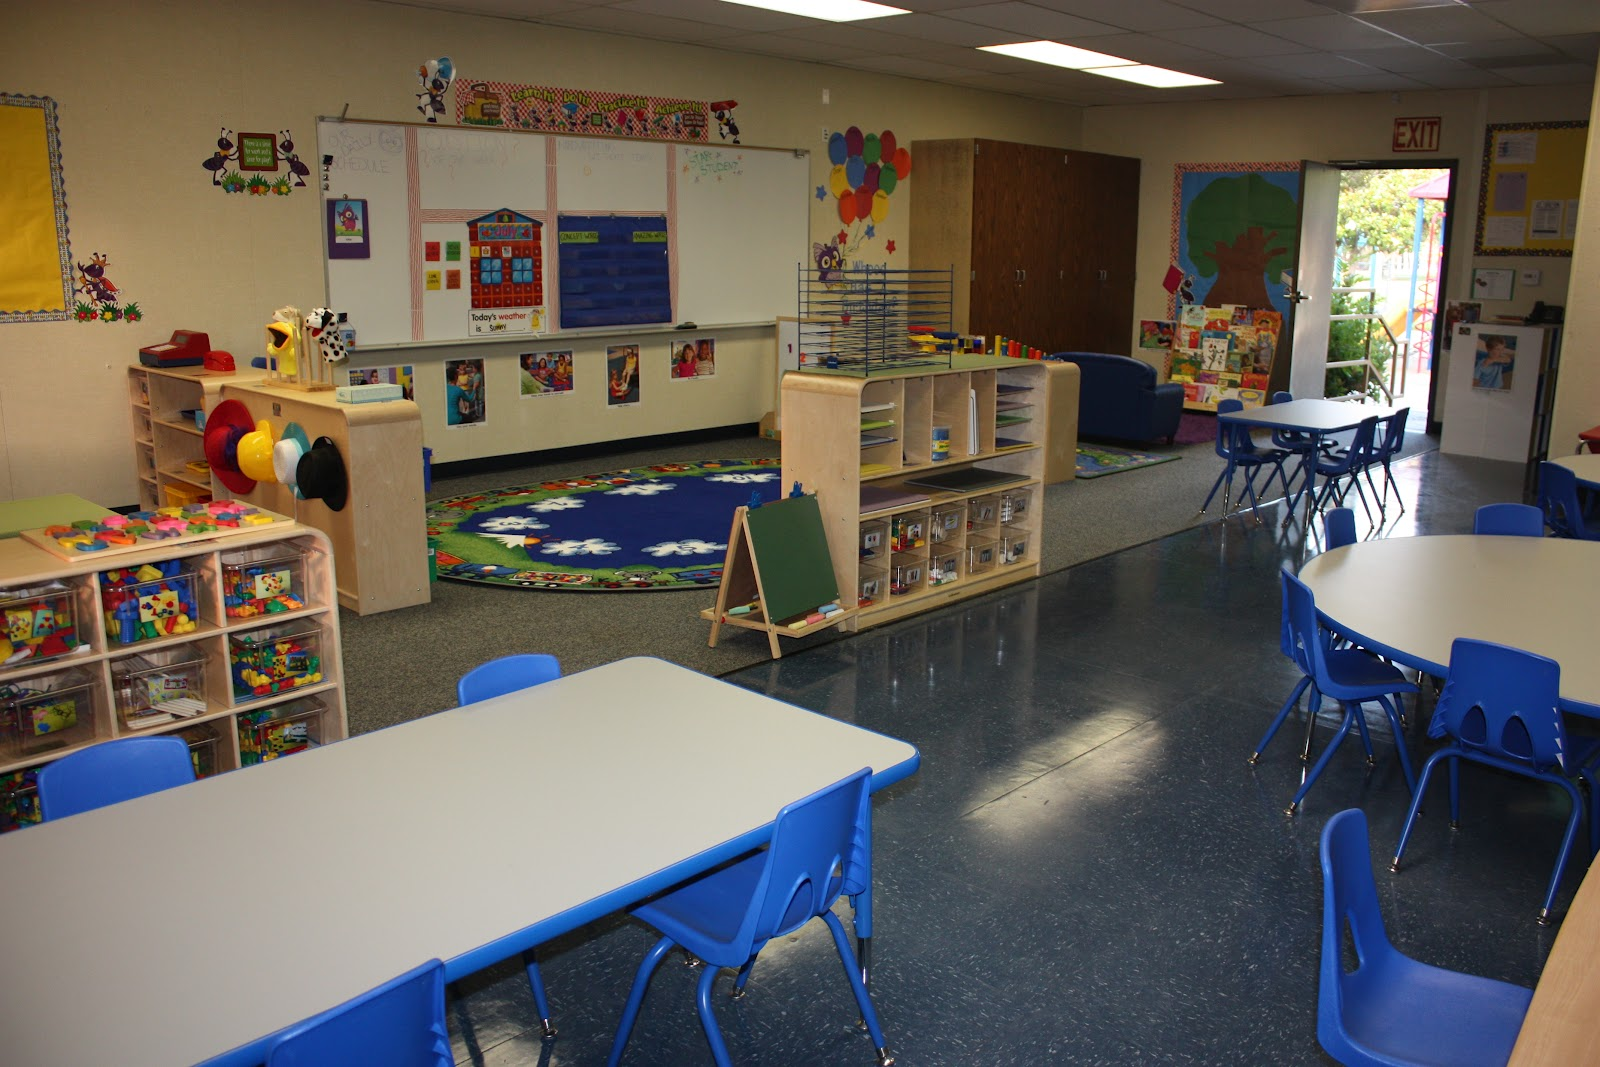 Classroom Setup And Design ~ More than abc s and preschool classroom set up